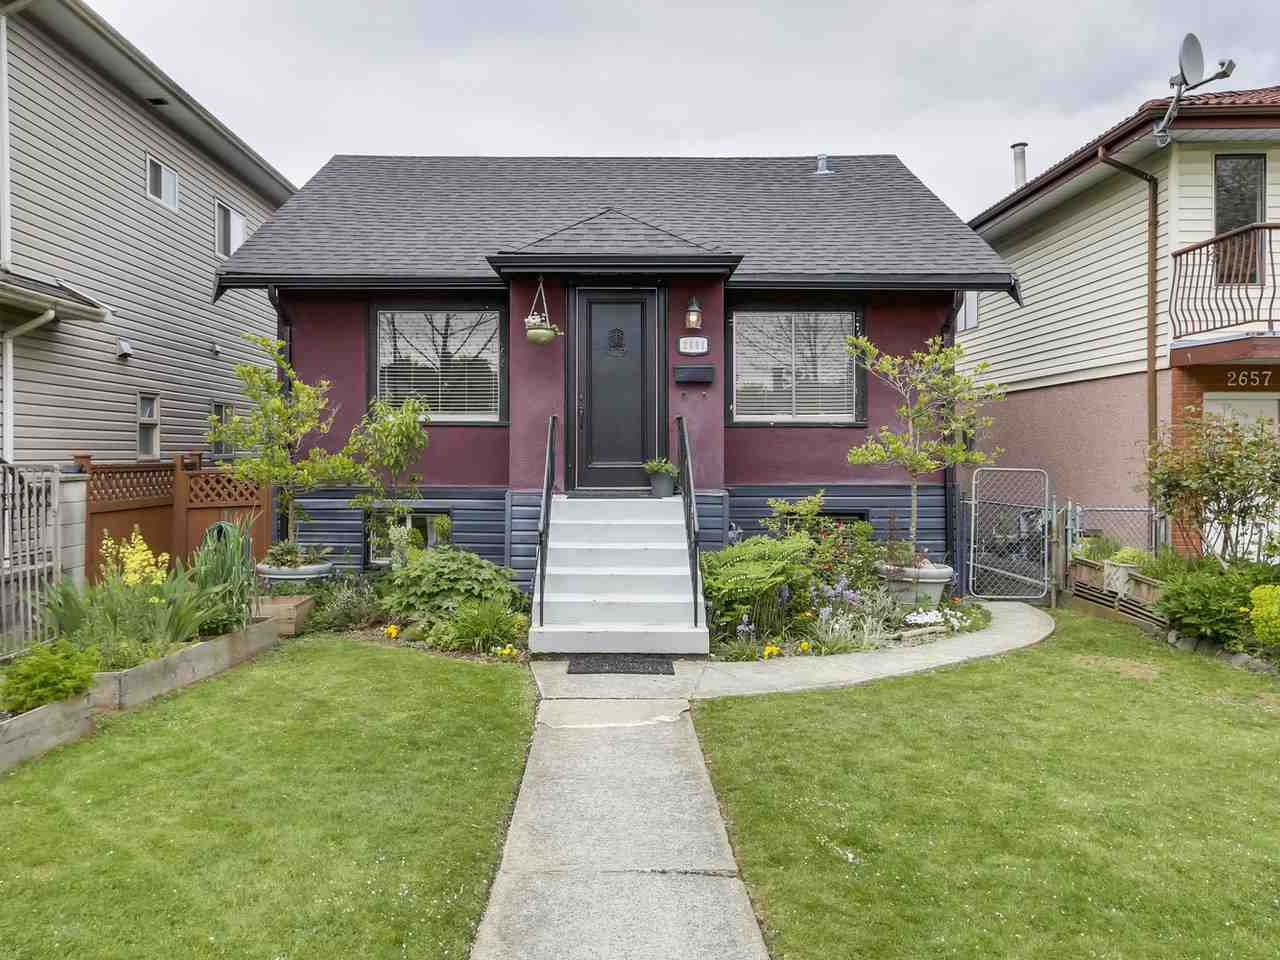 Main Photo: 2651 VENABLES Street in Vancouver: Renfrew VE House for sale (Vancouver East)  : MLS®# R2266027